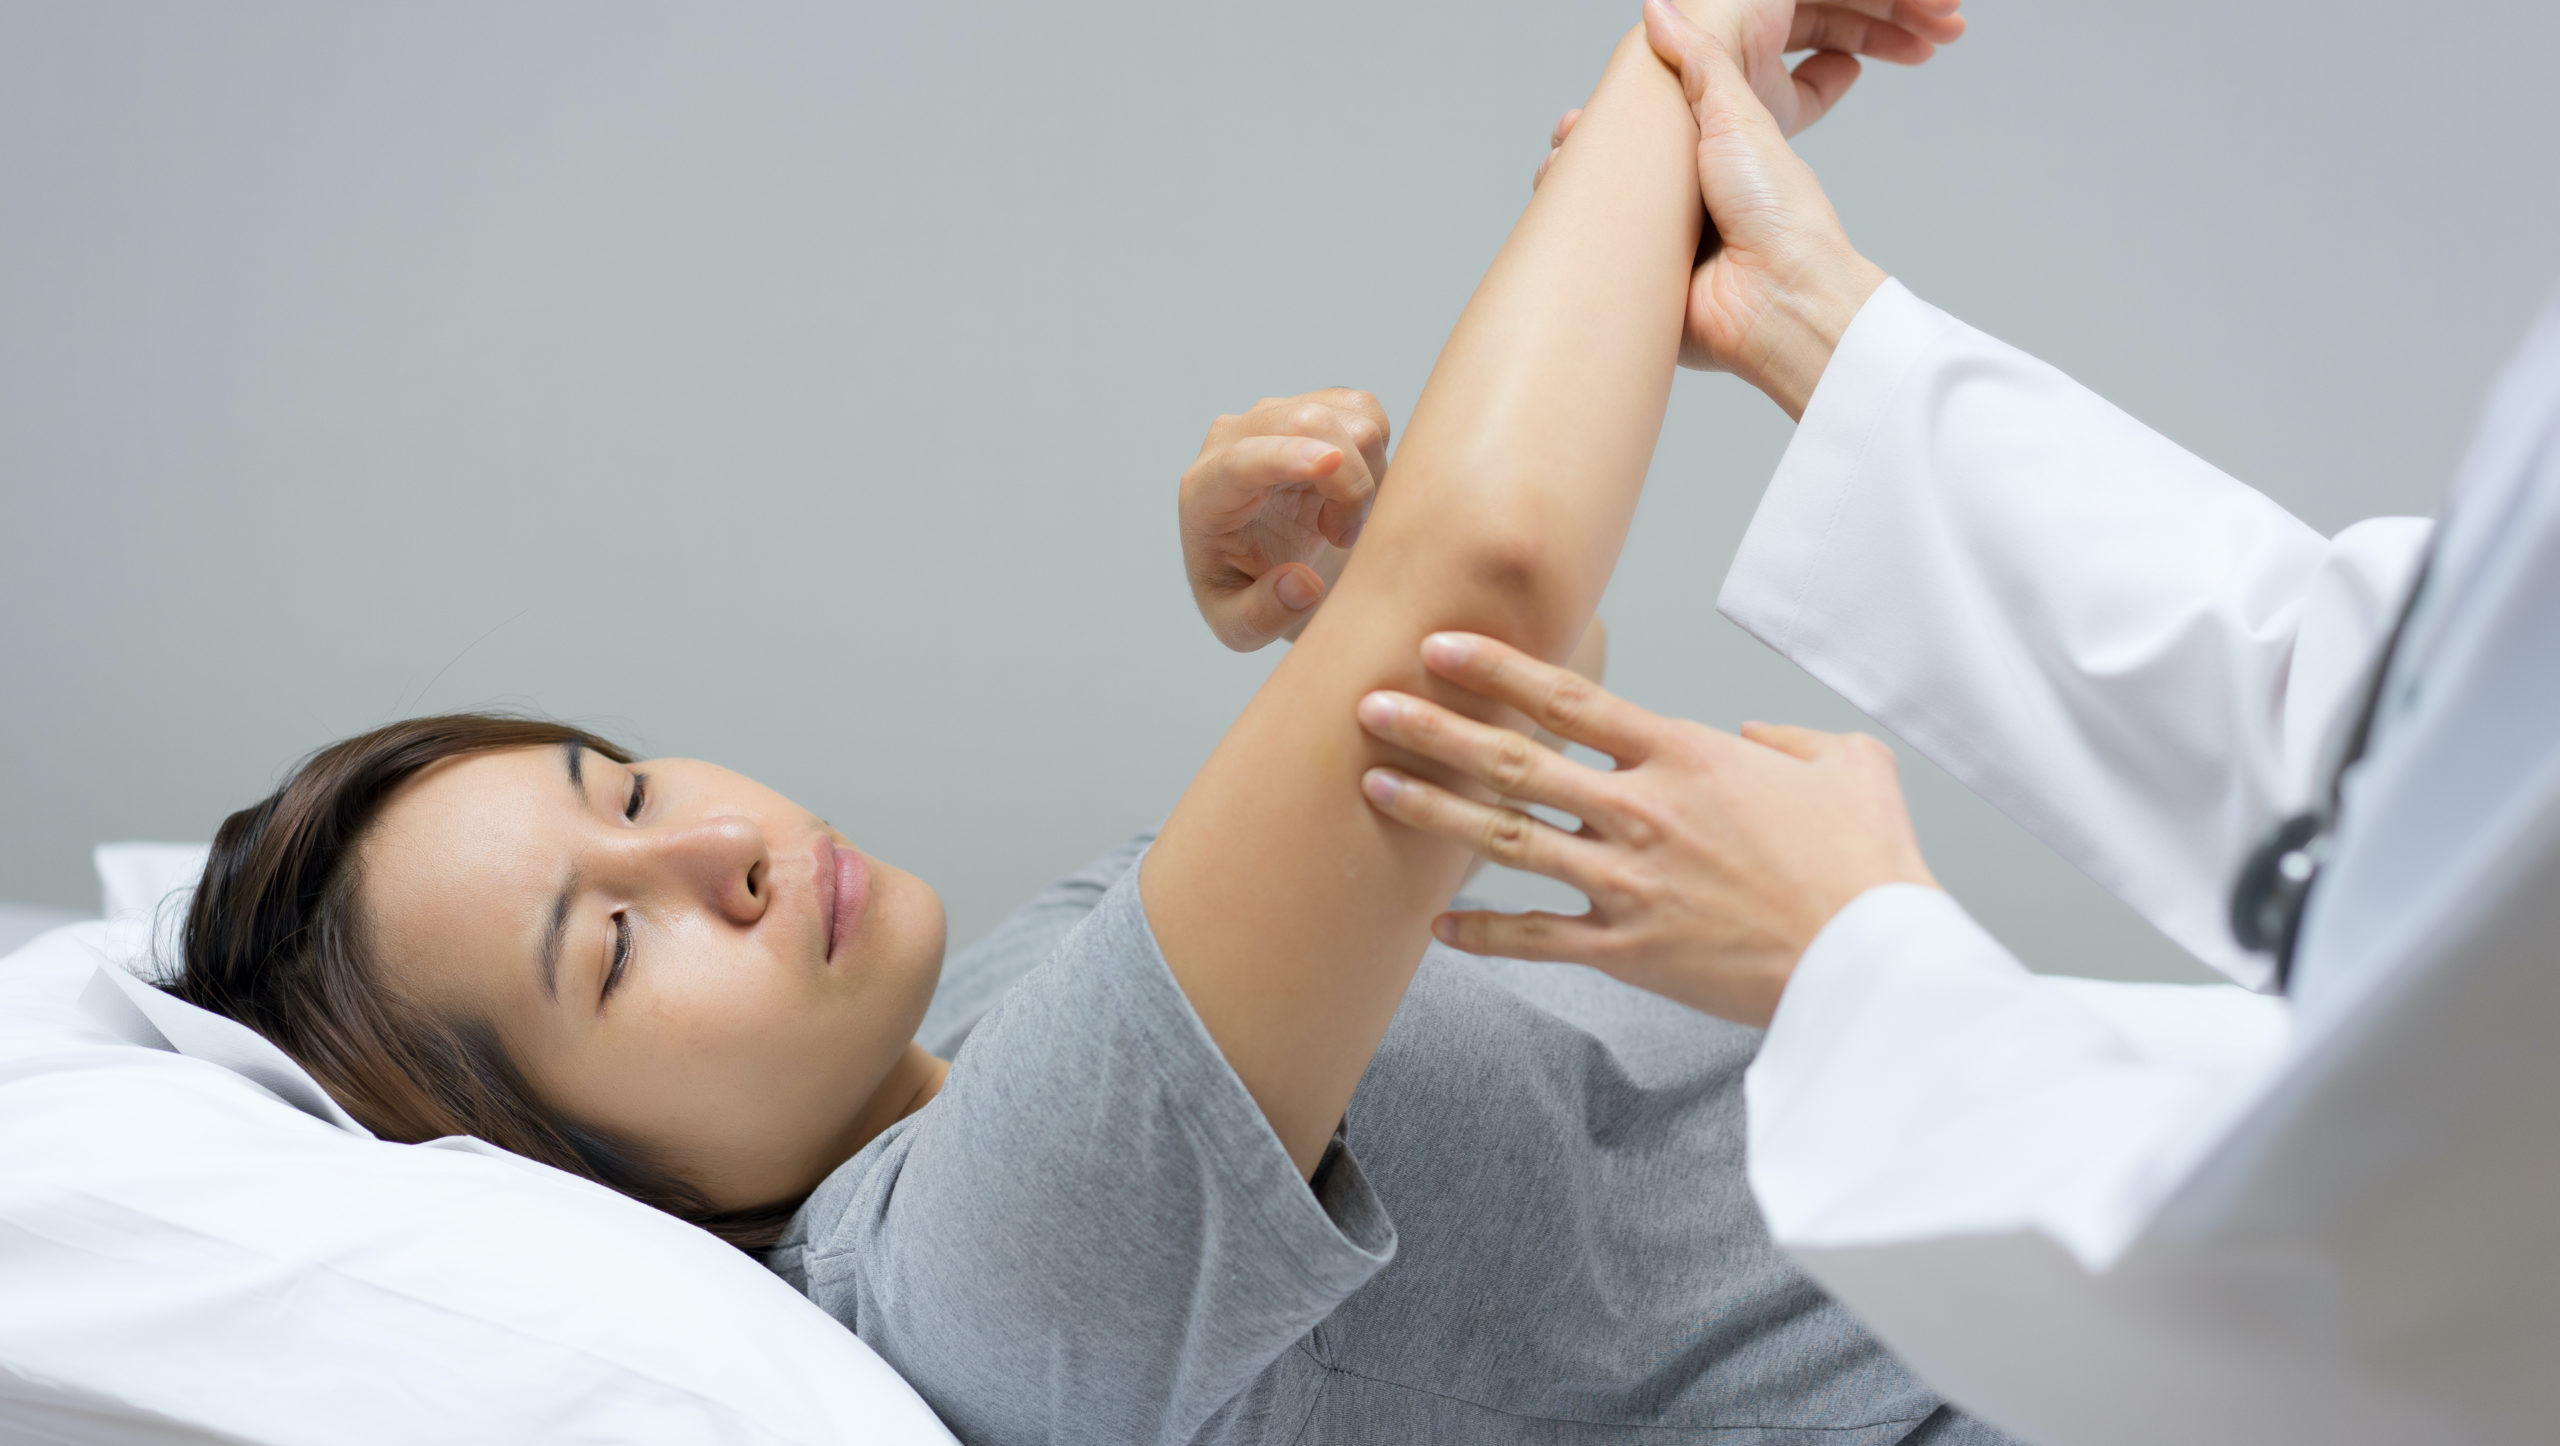 Doctor examining patient elbow